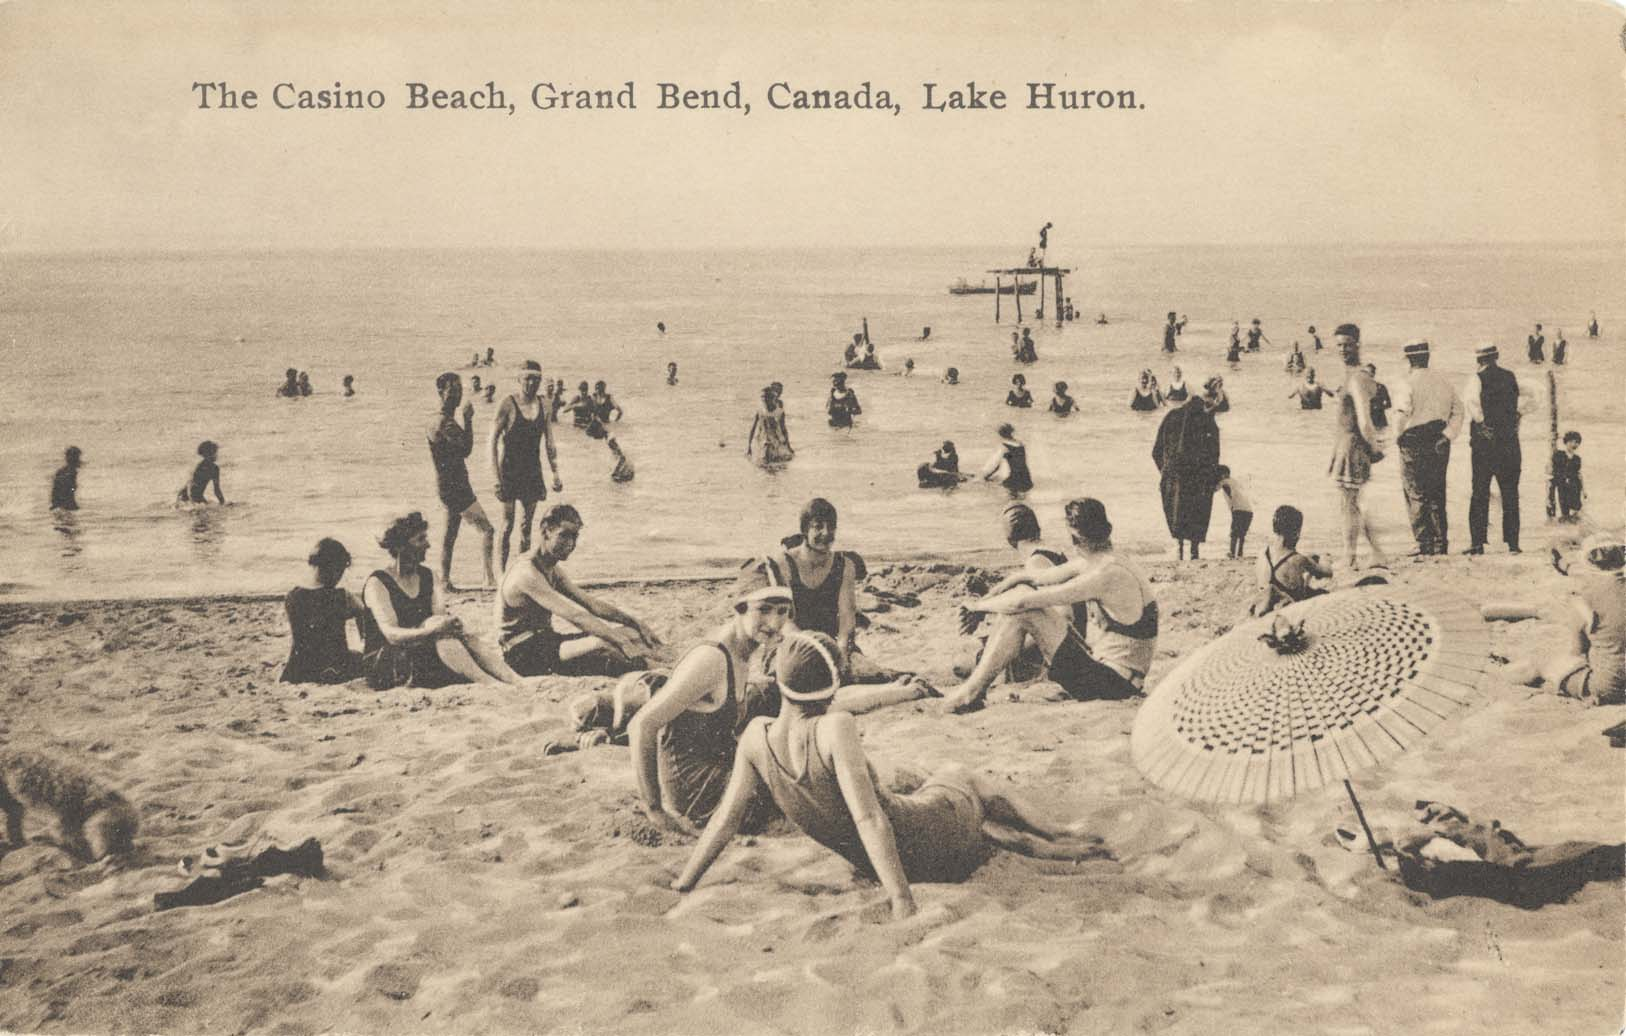 People enjoying time at the Grand Bend Beach in about 1920.